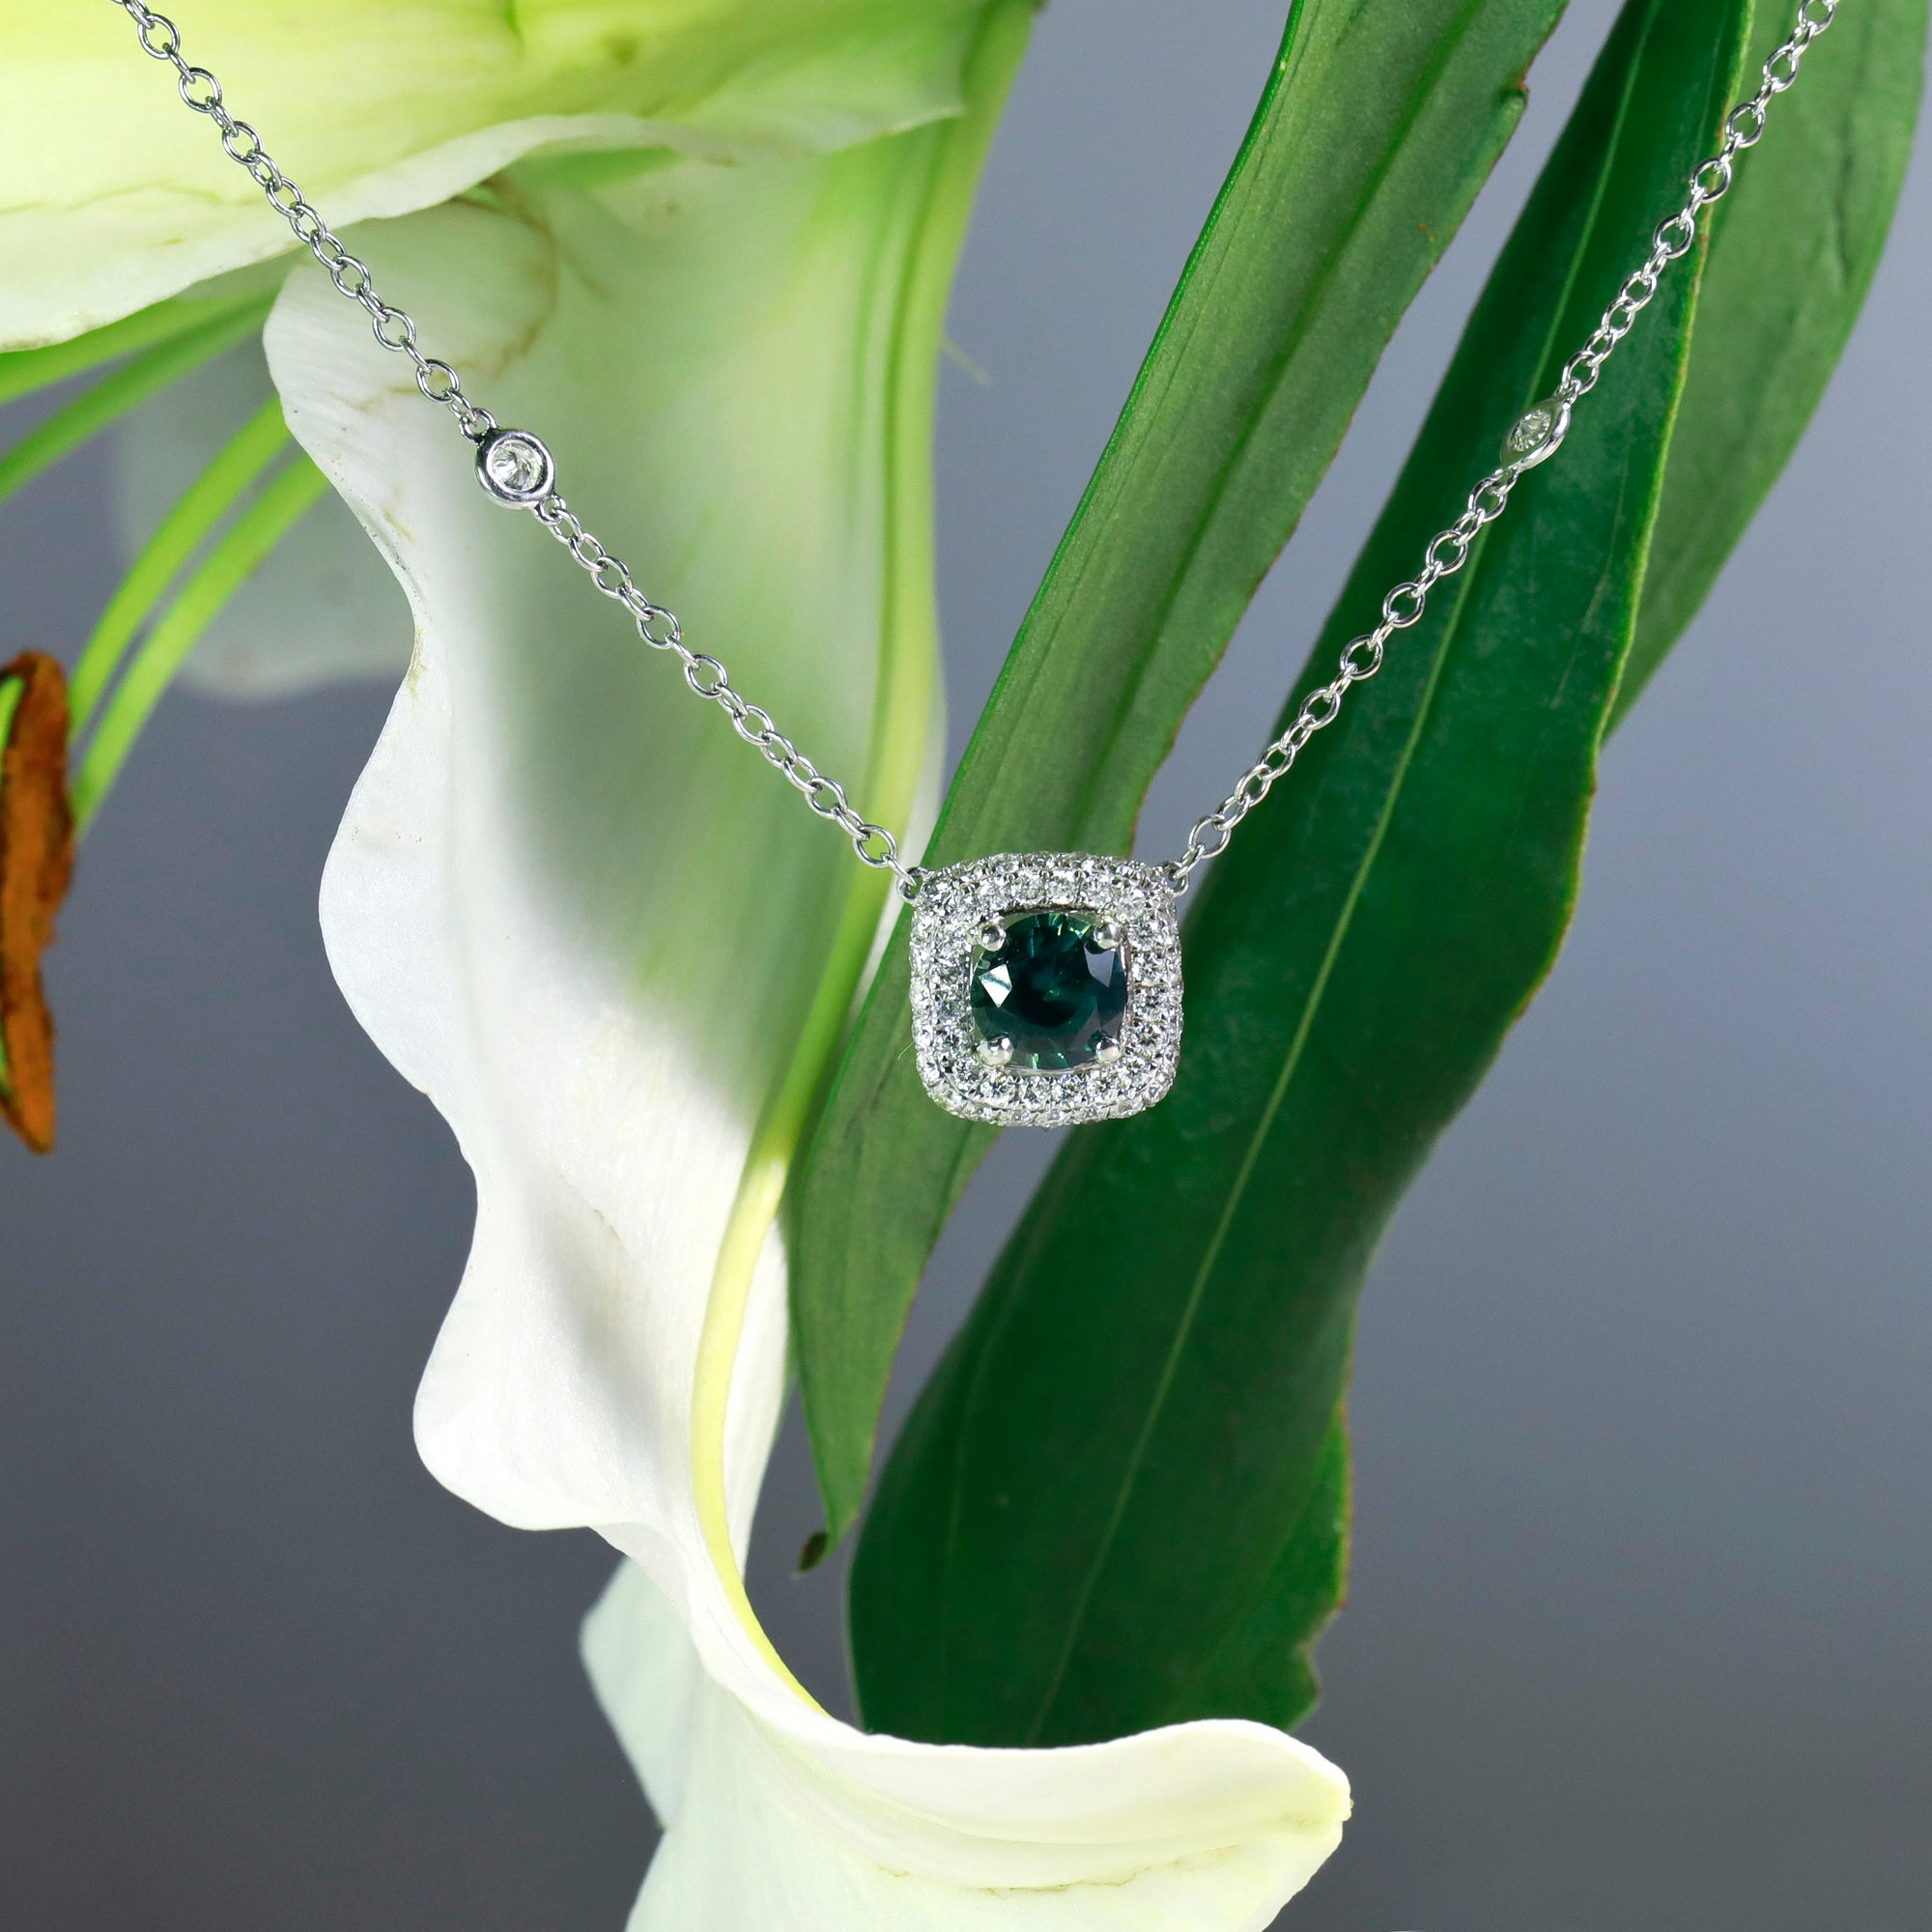 18-inch 18K white gold blue-green sapphire and diamond necklace featuring one round 1.63 carat blue-green sapphire, and round brilliant diamonds set in a cushion shaped halo and 8 bezel-set diamonds set along the chain.